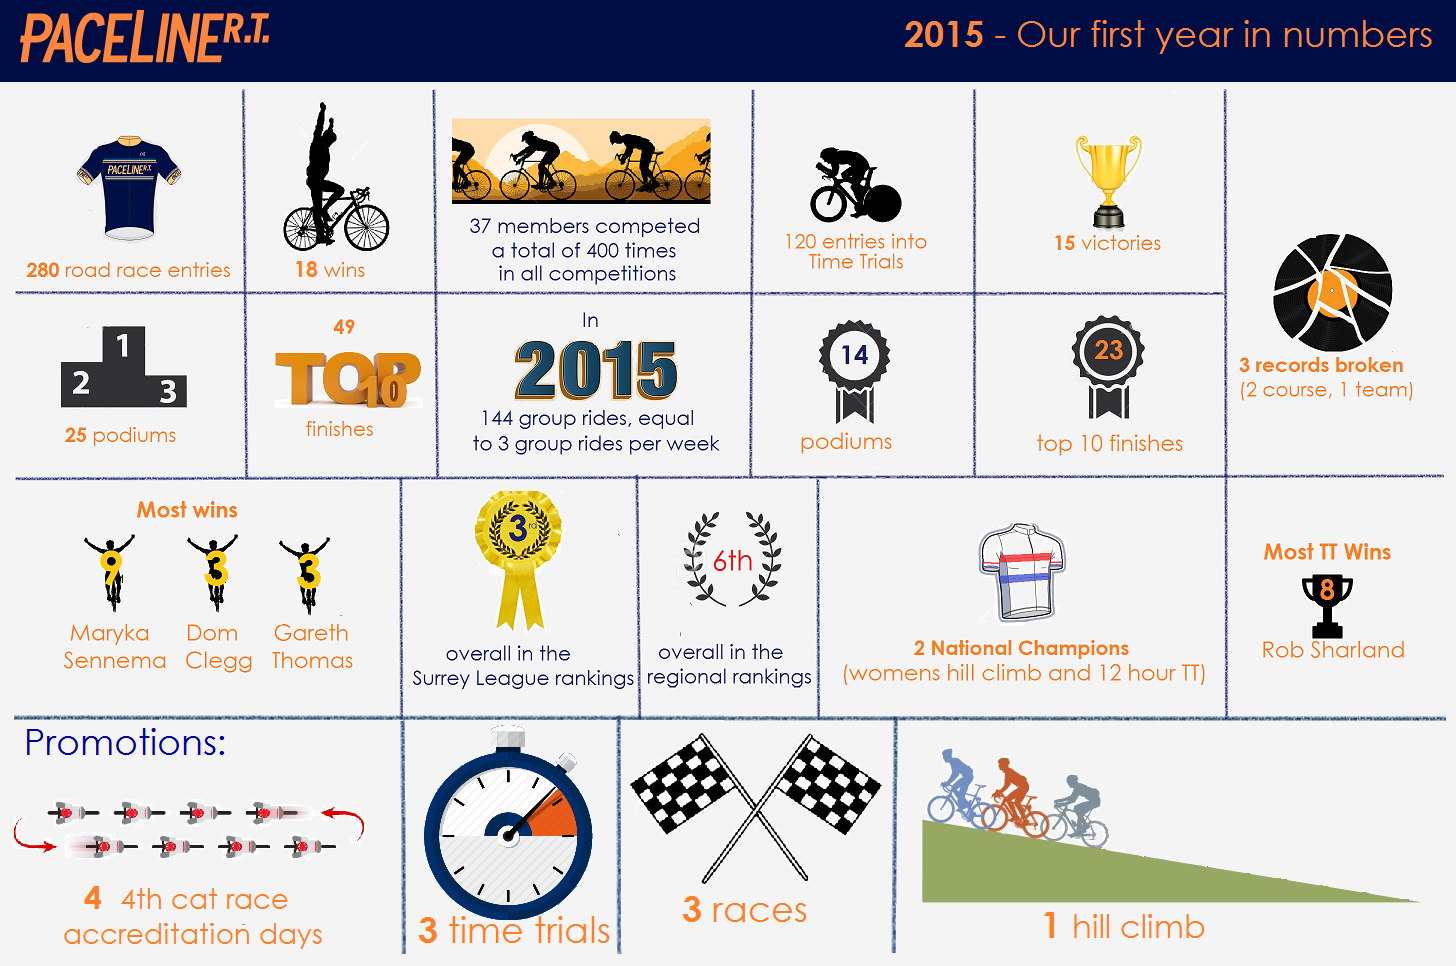 Paceline-RT's year in numbers; 2015